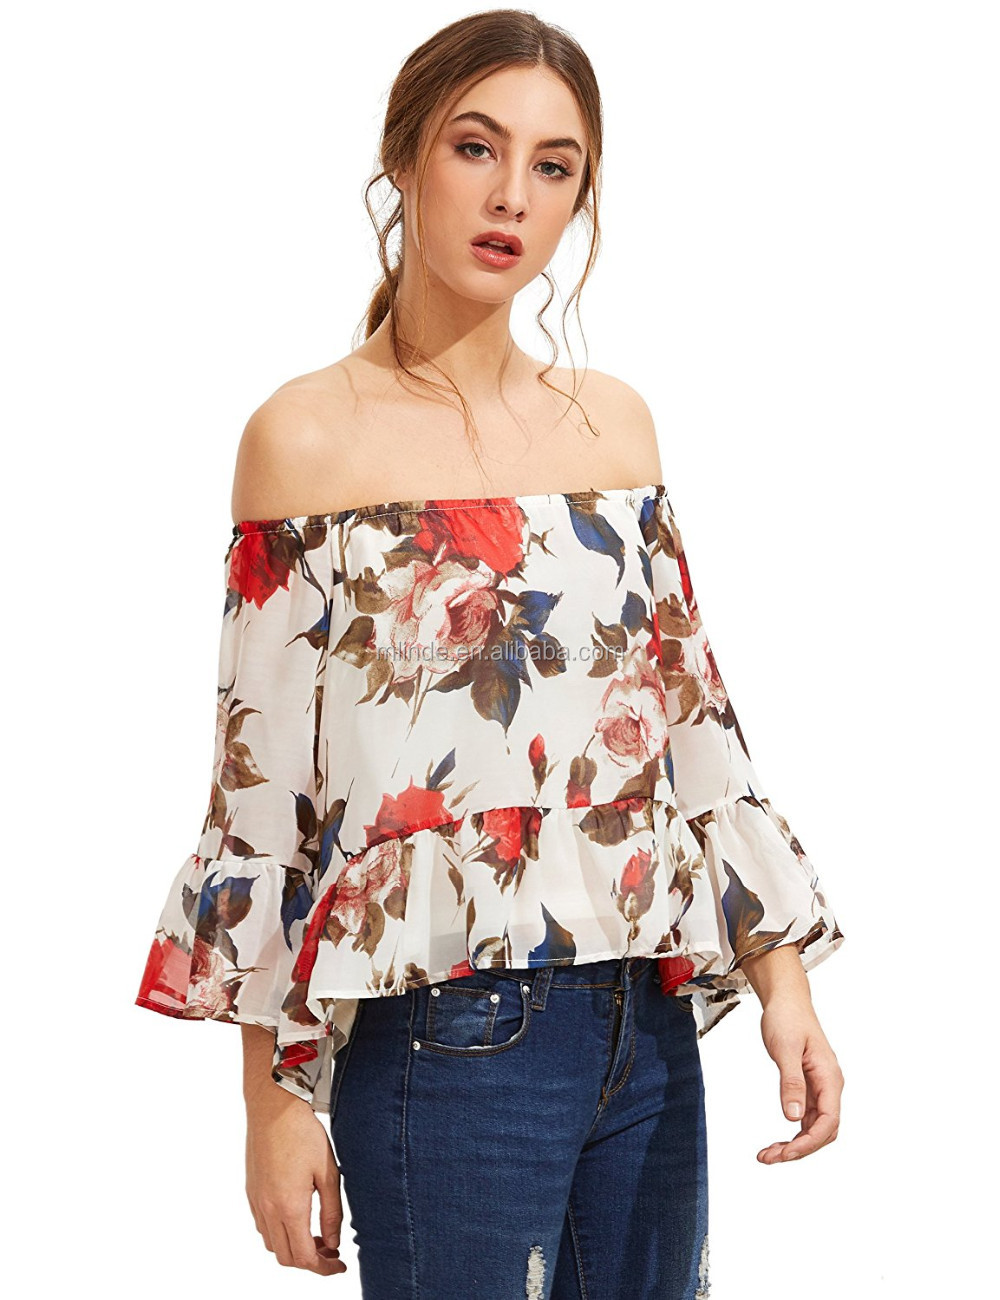 Womens Off Shoulder ChiffonT Shirt Girls Casual Summer Lace Floral Blouse Tops